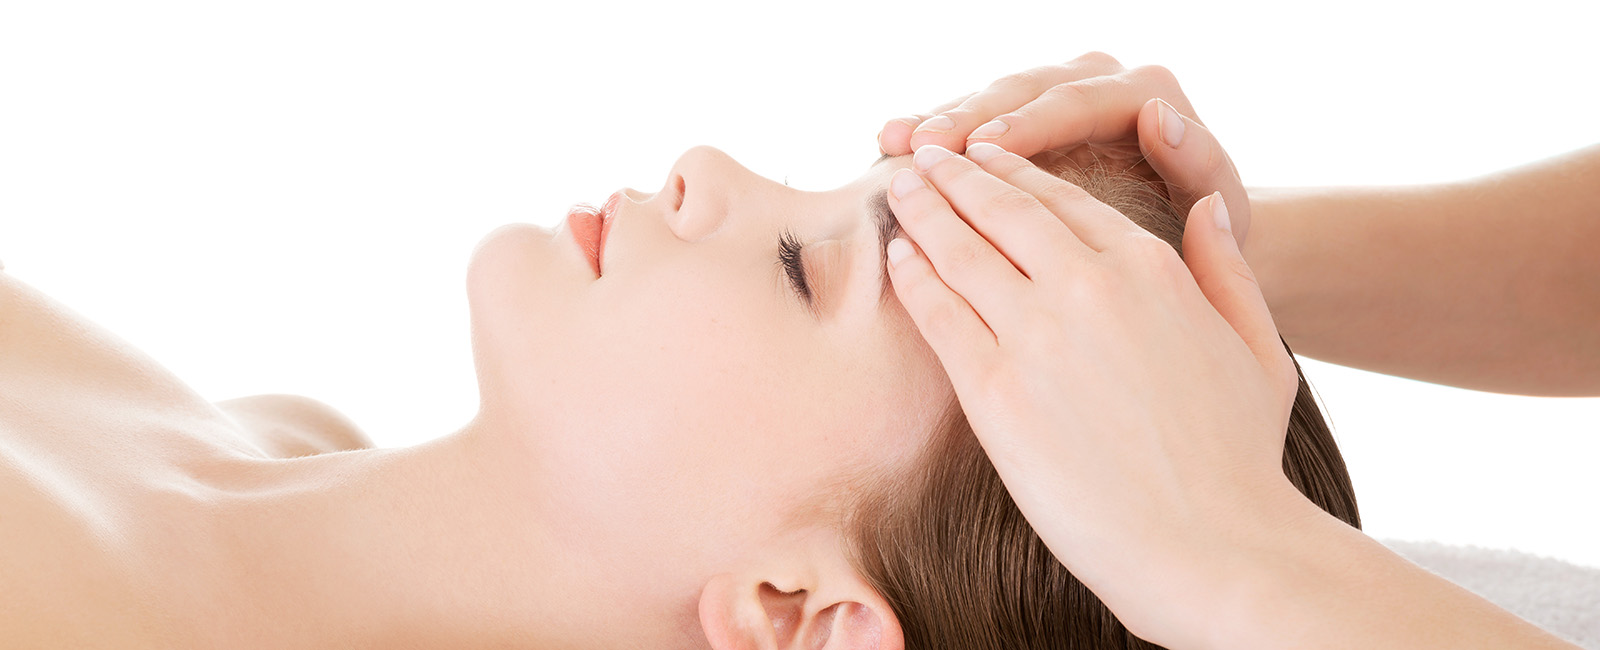 mukherjee-naked-acupressure-facial-massage